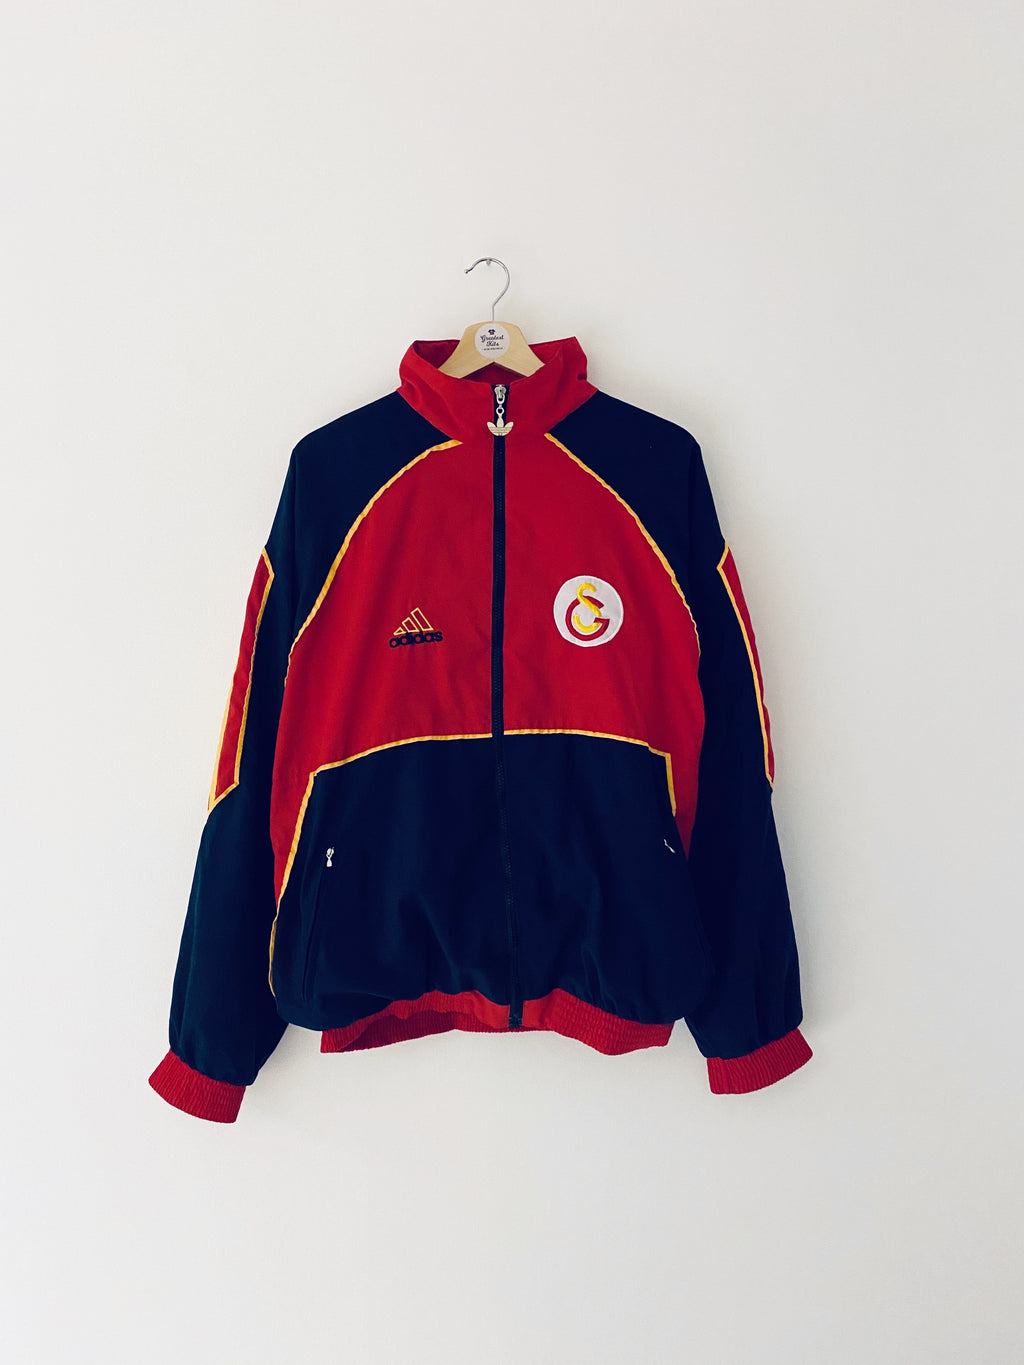 1995/96 Galatasaray Training Jacket (S) 9/10